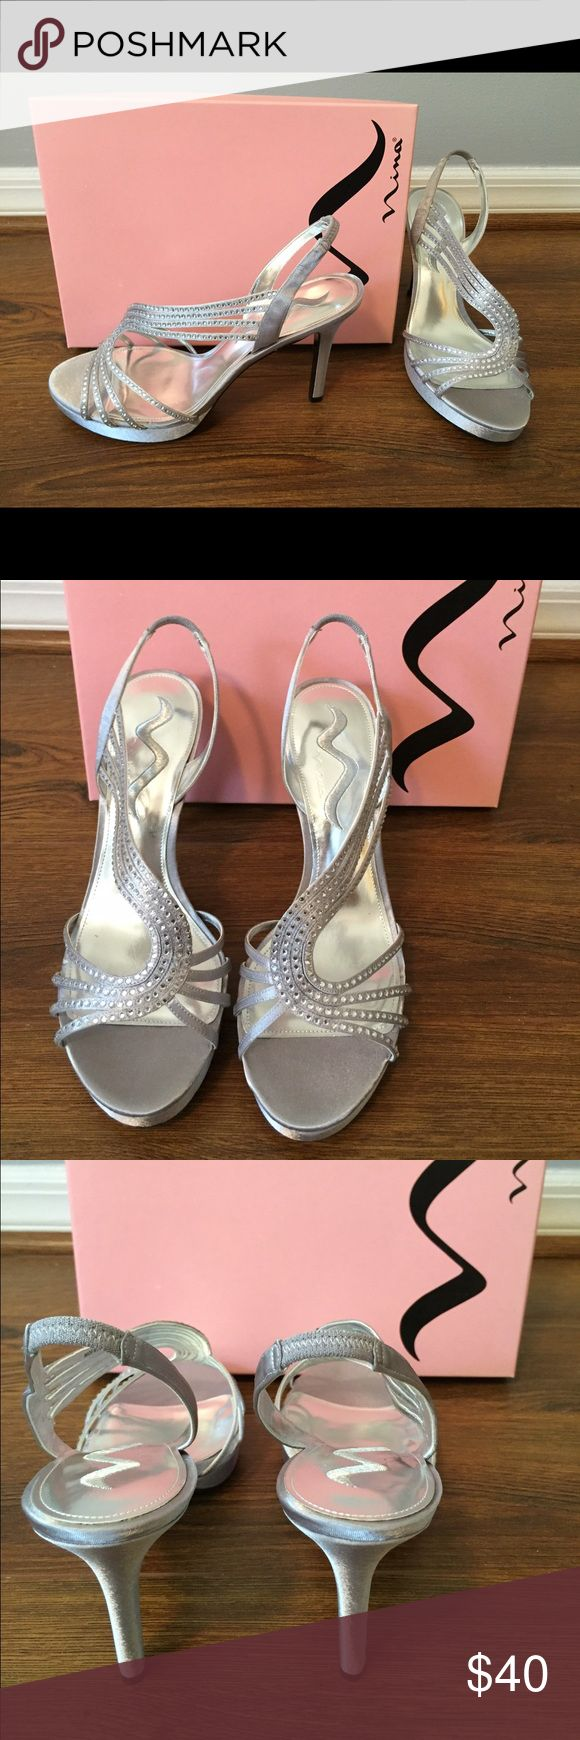 Dressy Silver Heels NEVER WORN, perfect condition!!  Stunning silver dress shoes with the just right amount of sparkle.  Perfect for a wedding or other formal event. Nina Shoes Heels